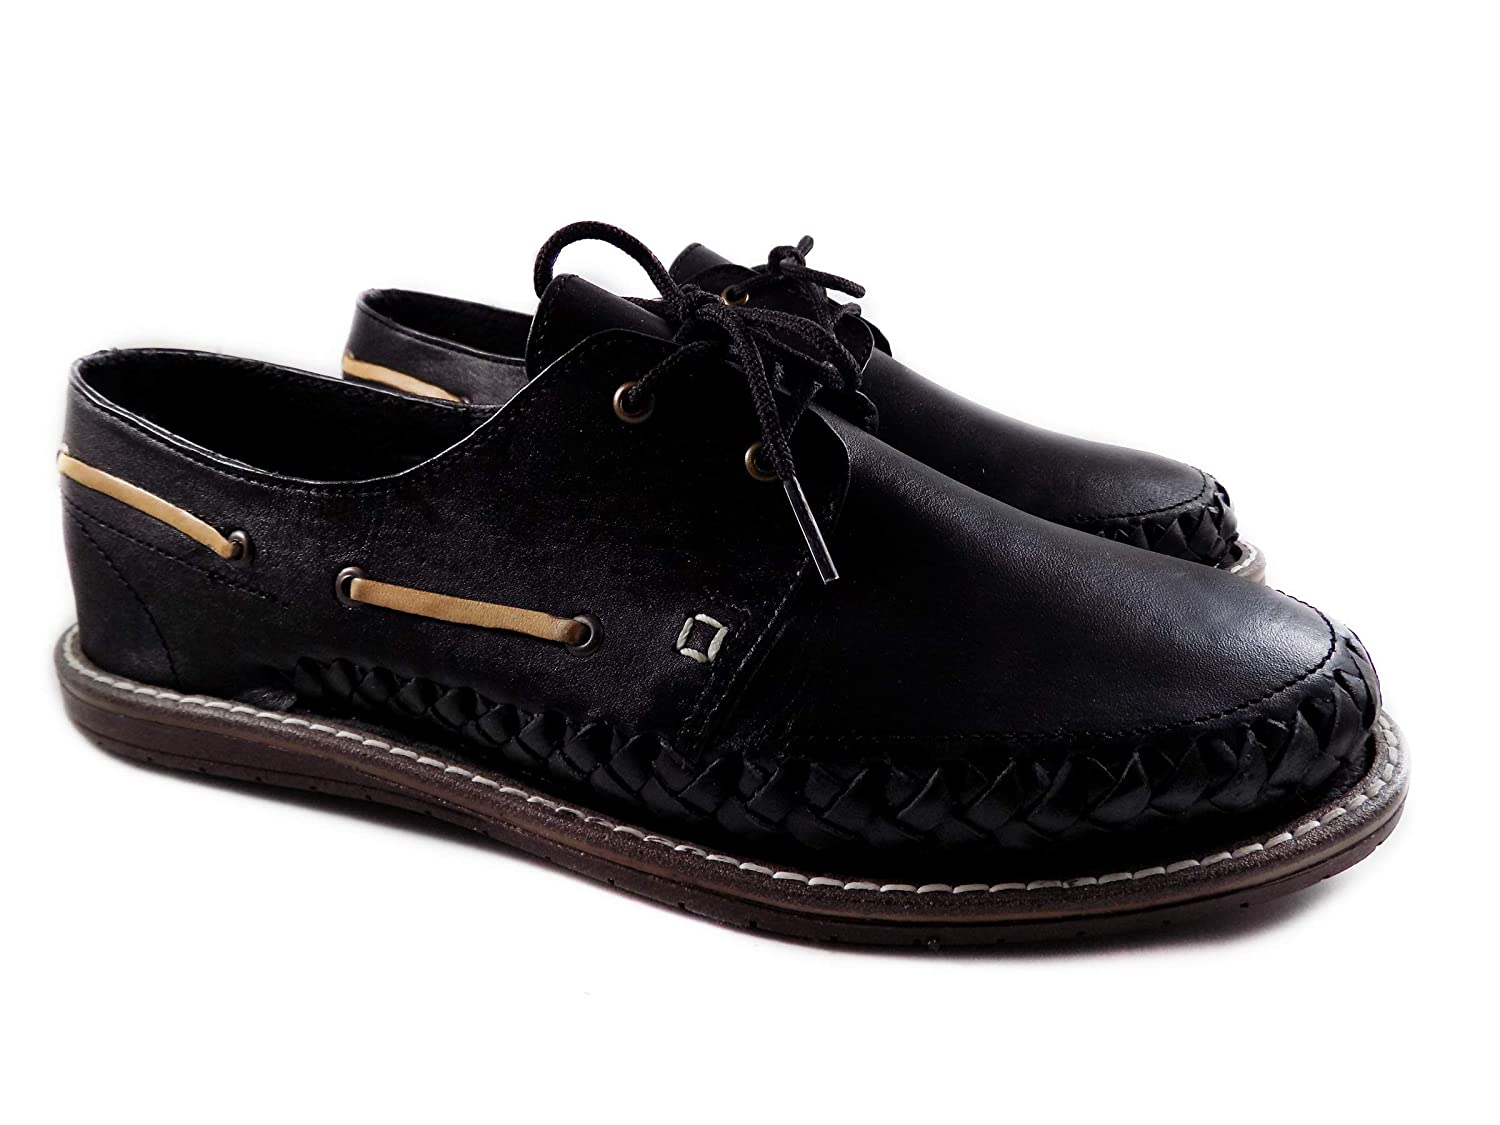 Mexican huaraches for men top - moccasins siders Luxury goods safety Black